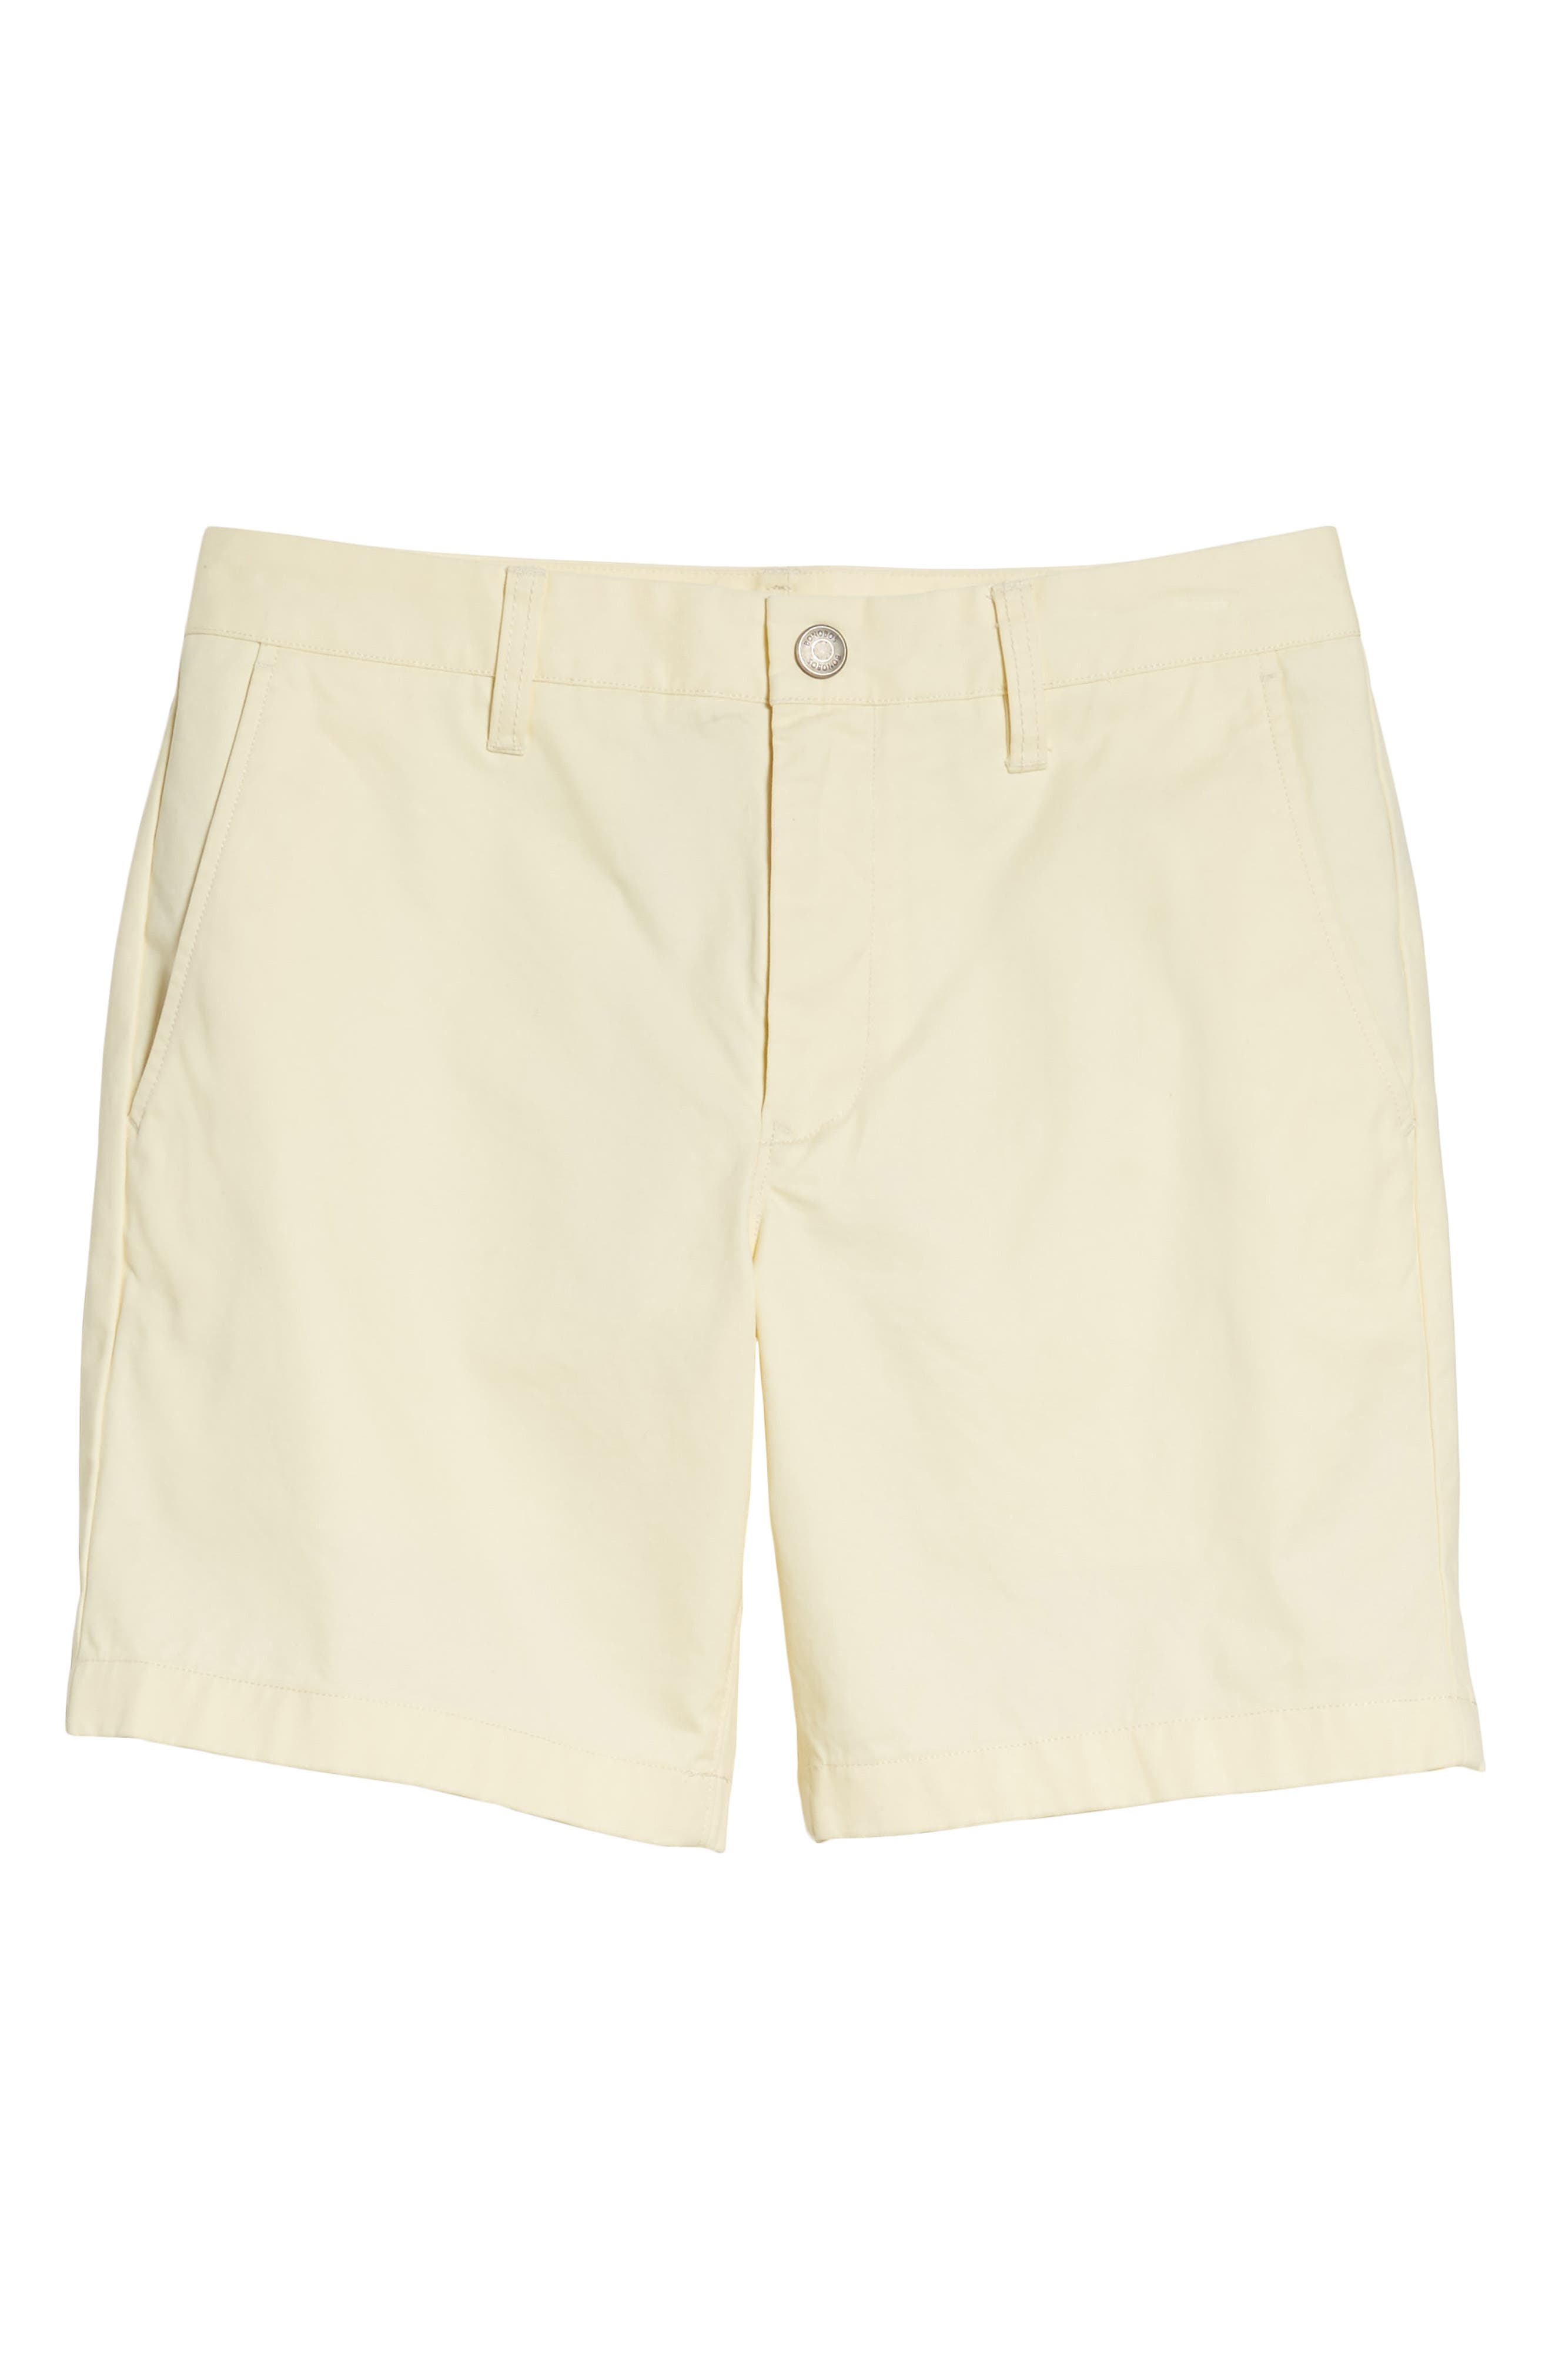 Stretch Washed Chino 7-Inch Shorts,                             Alternate thumbnail 117, color,